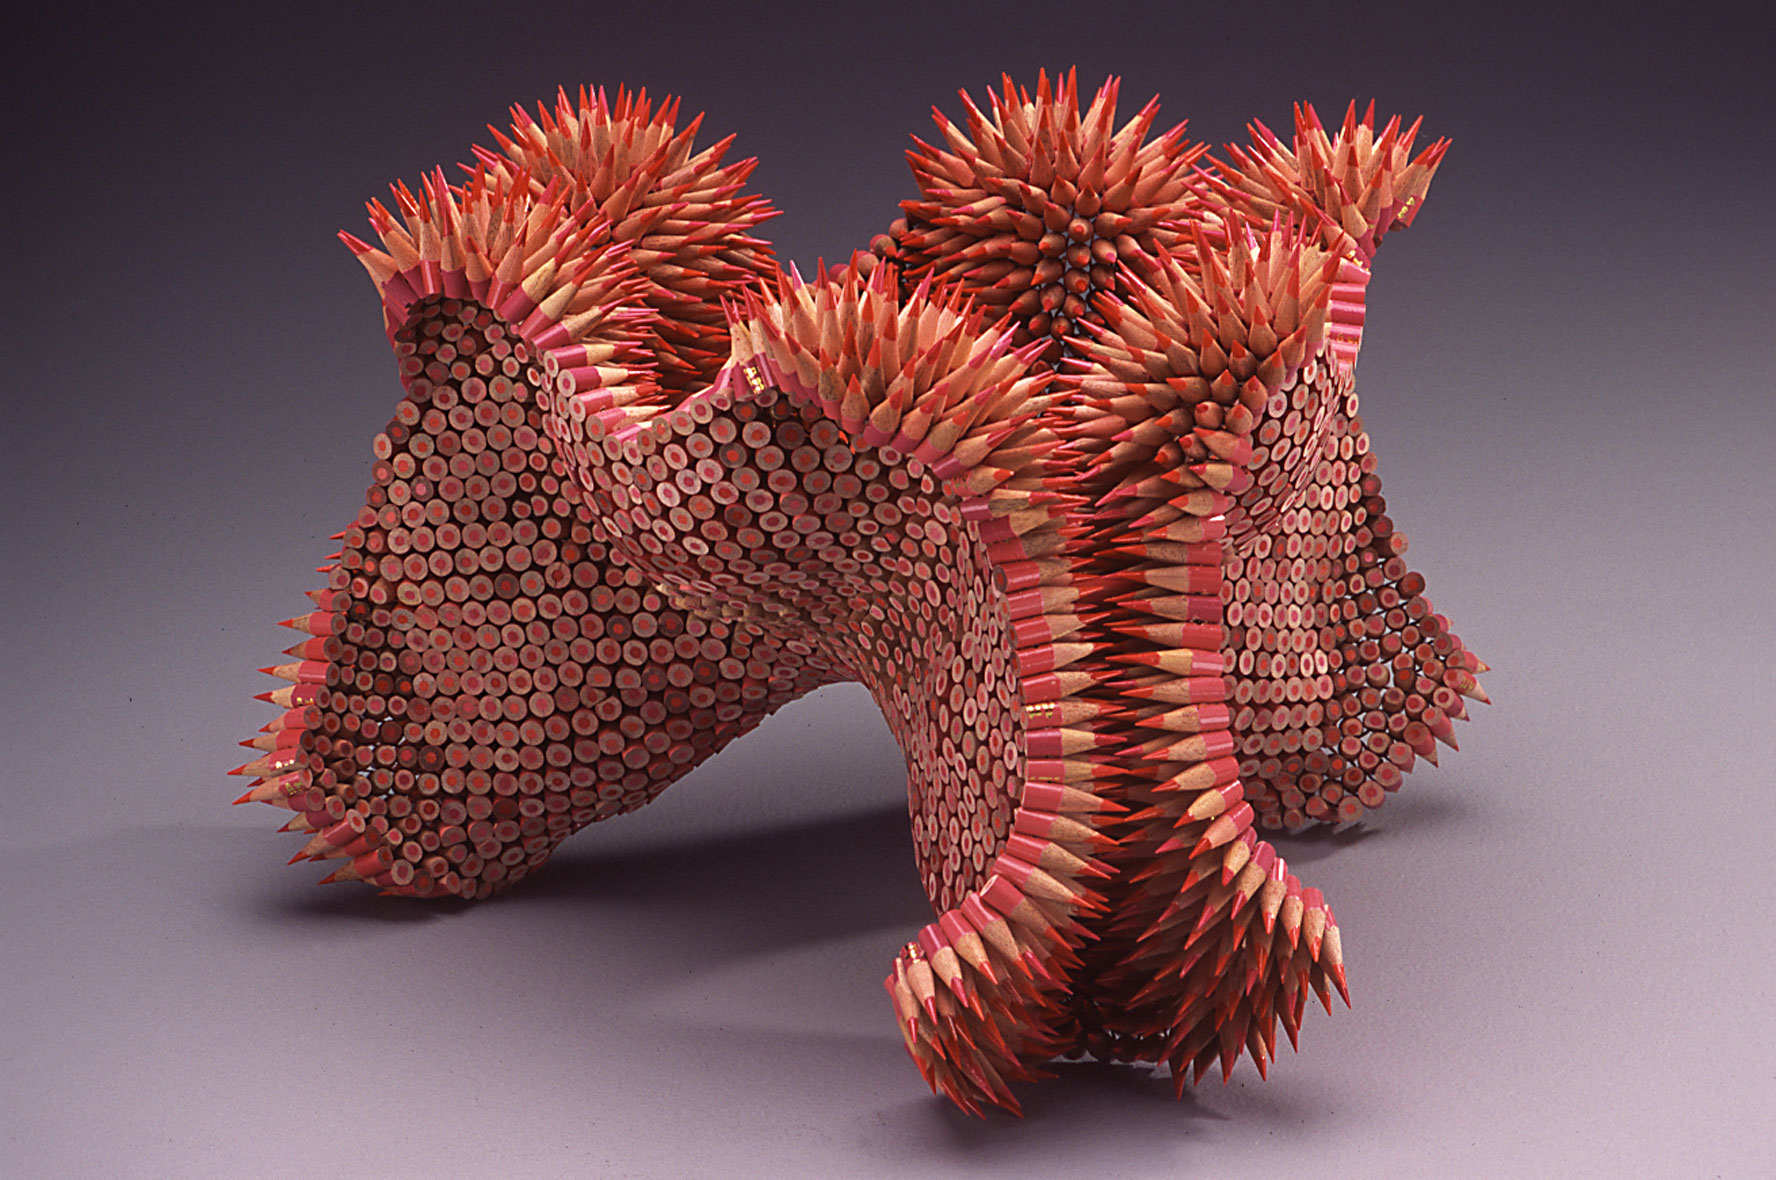 Jennifer maestre on pinterest pencil sculpture and